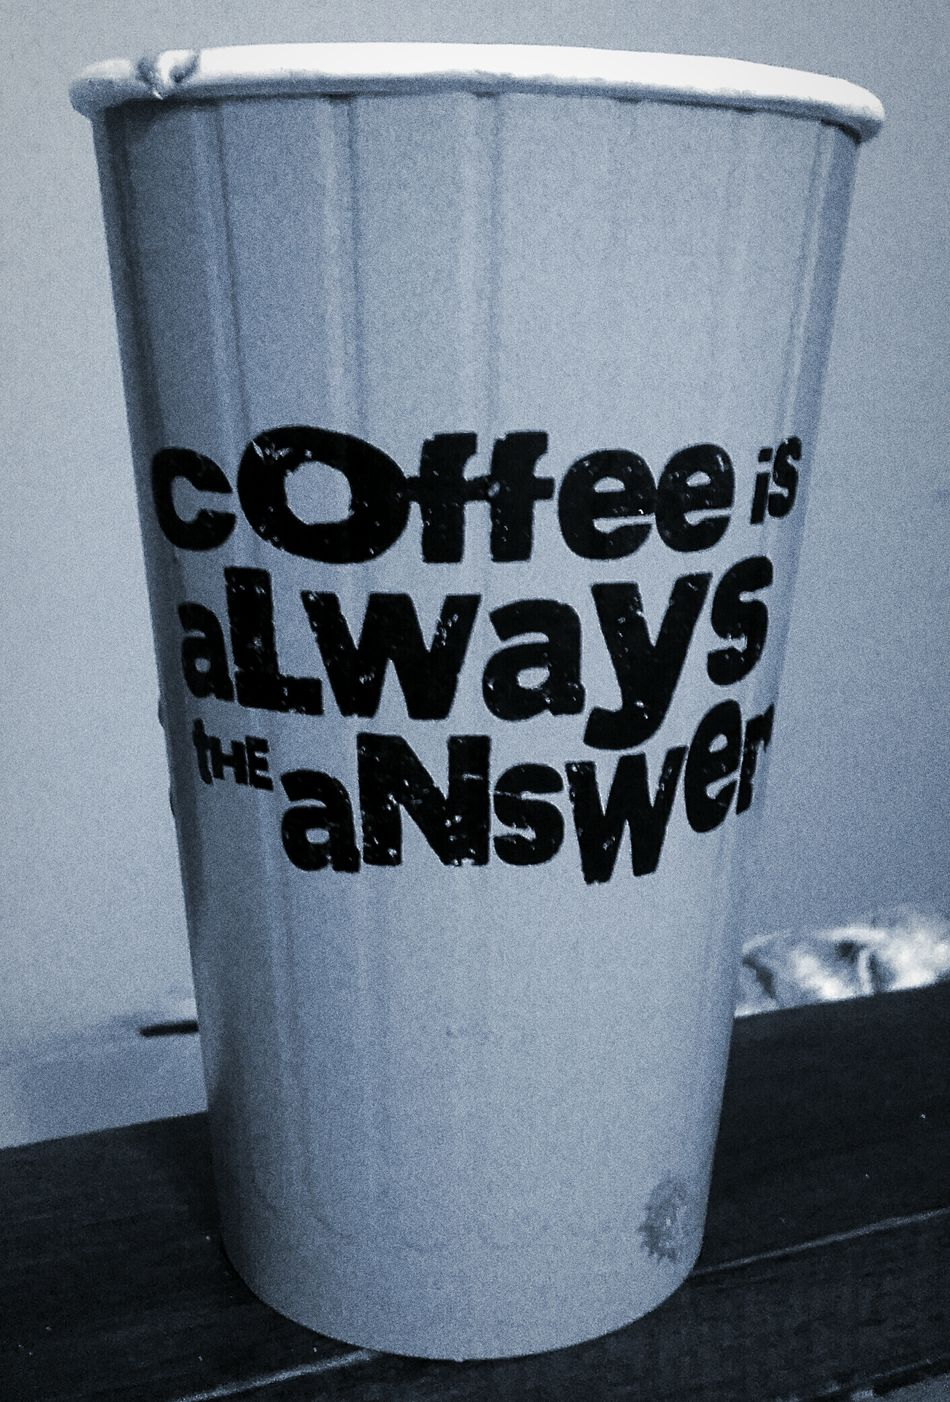 Coffee Is Always The Answer Coffee Cups Coffee Break Take Away Cup Coffee Disposable Cup Take Away Coffee Coffee Cup Take Away Cups Disposable Cups Disposablecups Disposable Coffee Cups Drink Cups Coffee ☕ Disposable Coffee Cup Disposablecoffeecups Coffee Time Koffee Drink Cup Drinkcups Drinkcup Caffeine Coffee - Drink Drinking Coffee Coffeetime